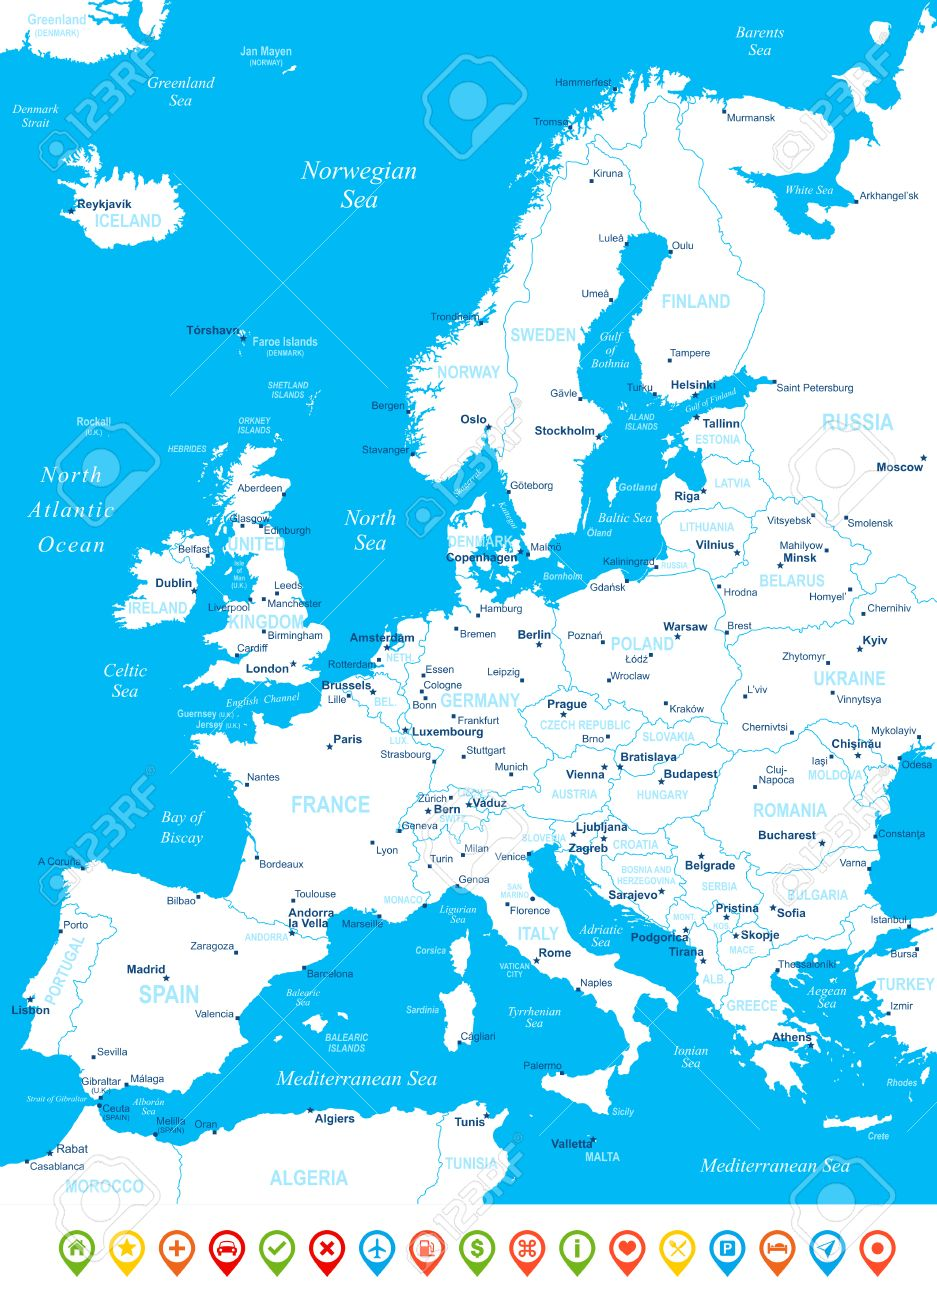 225 hungary vector map stock vector illustration and royalty free